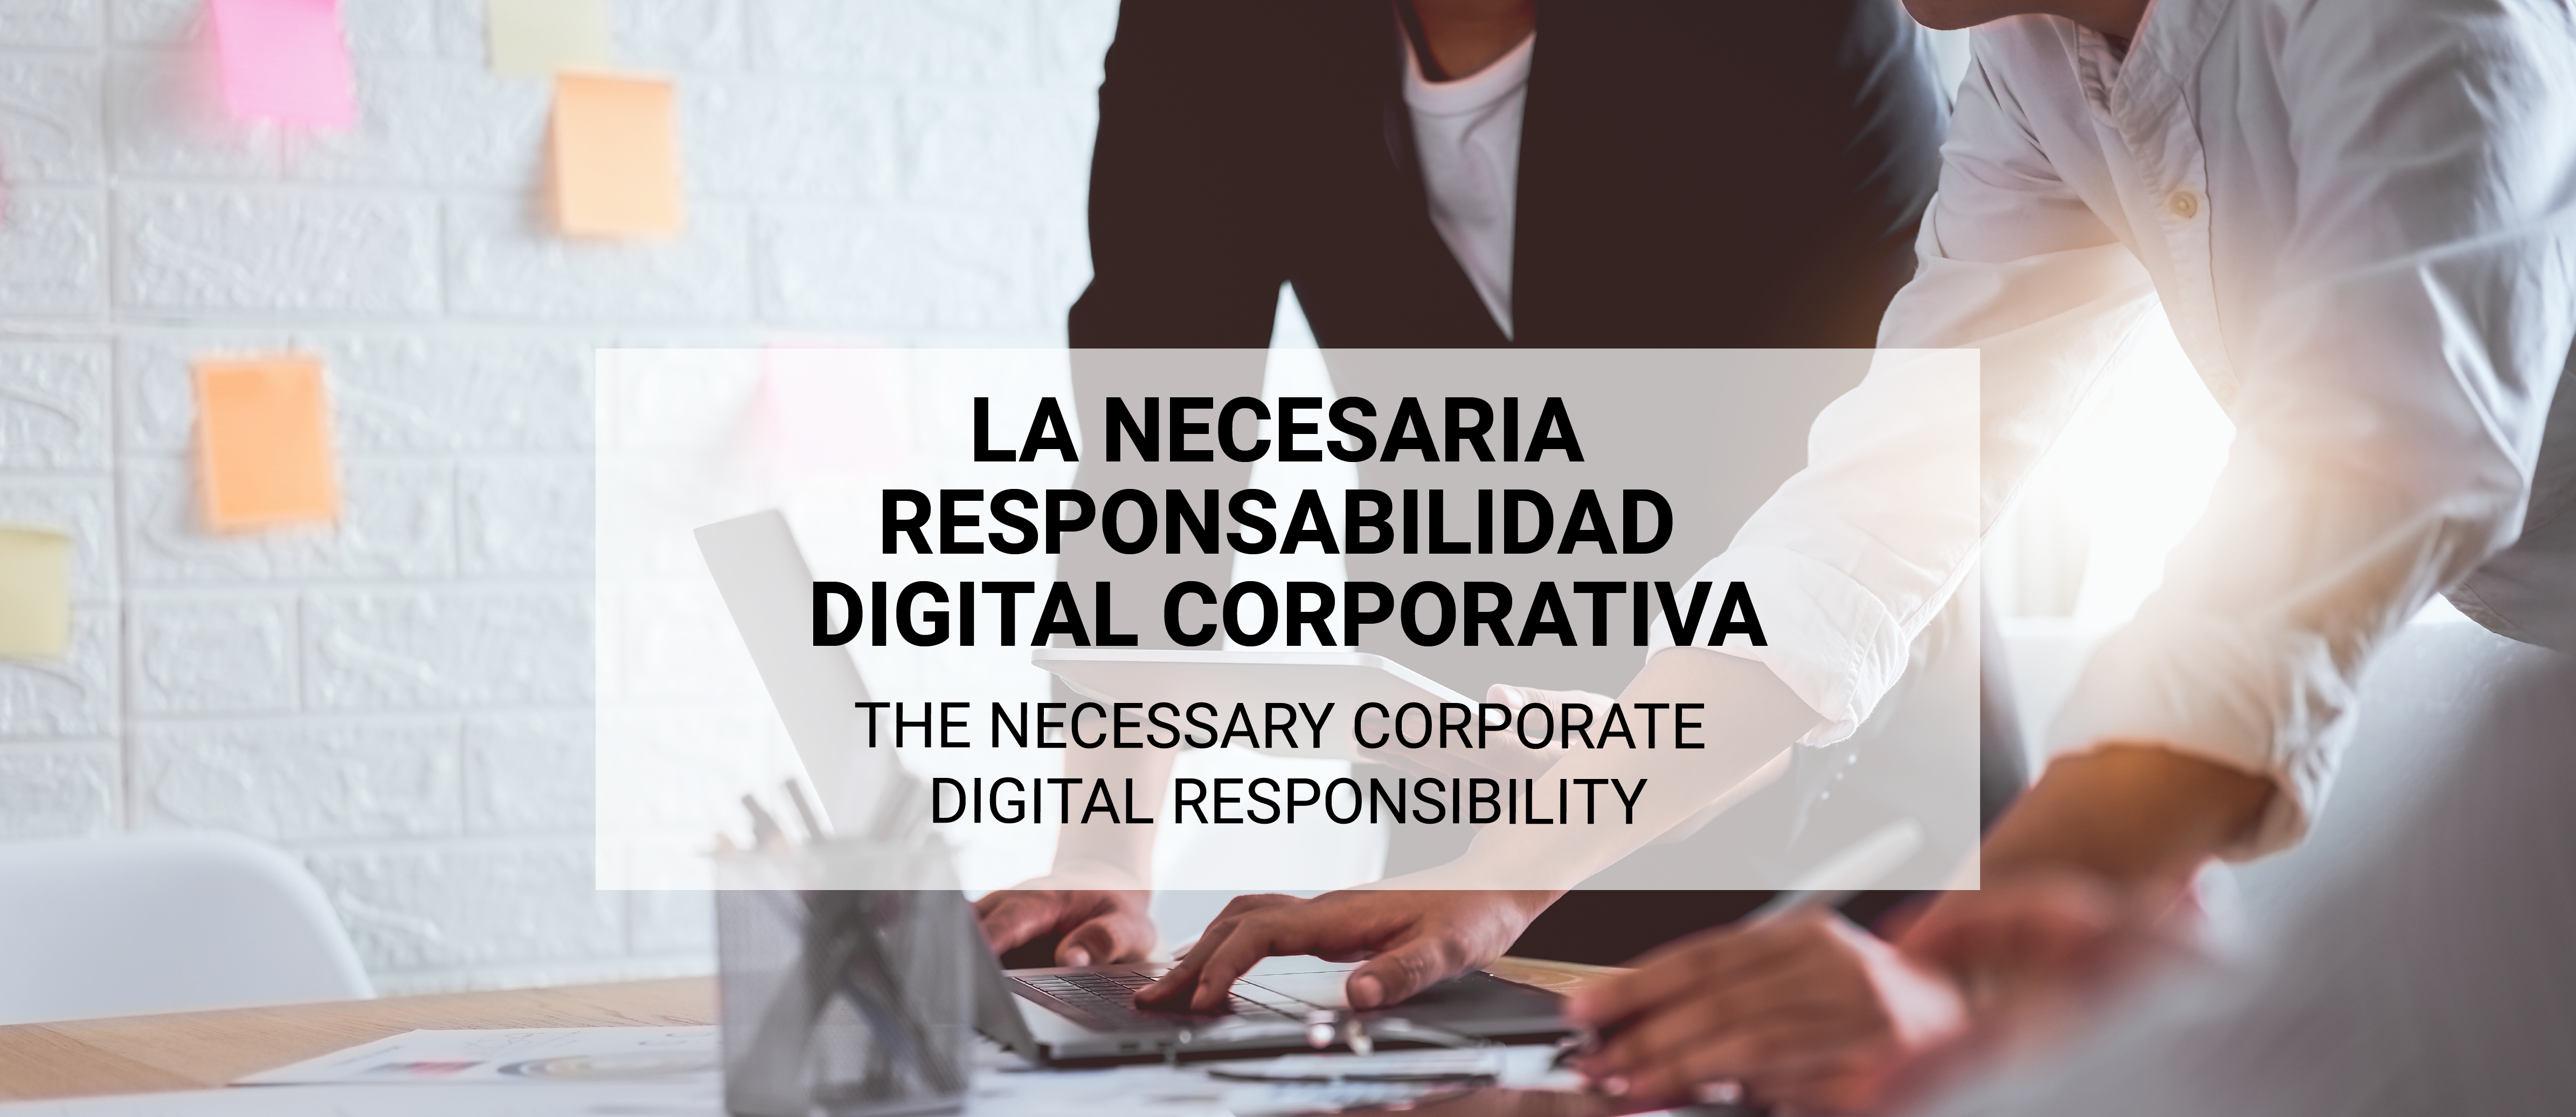 The necessary Corporate Digital Responsibility